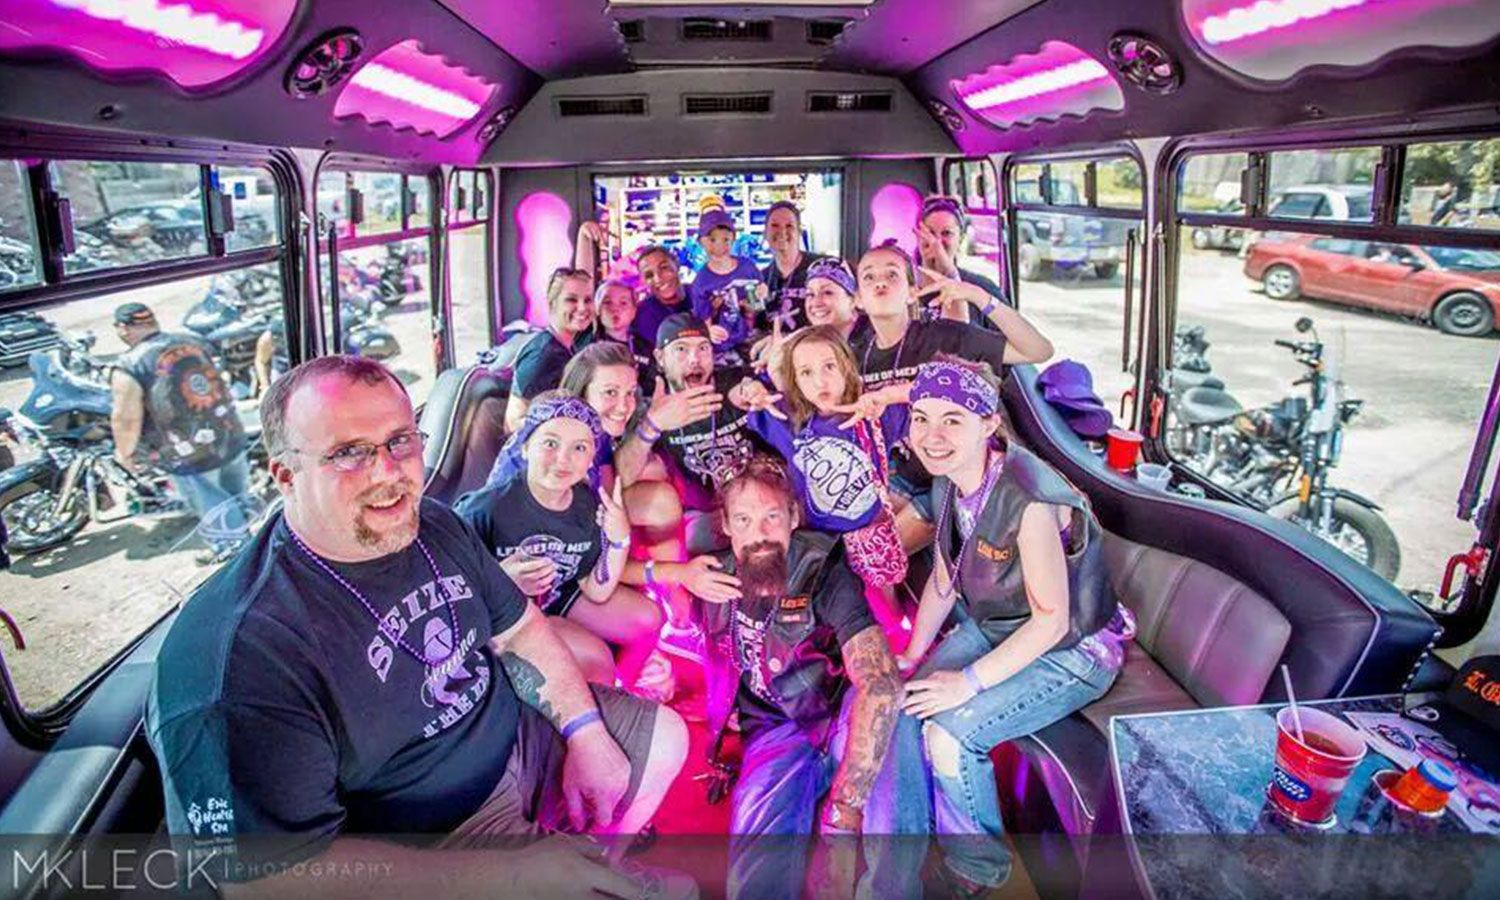 Hosting a Study Circle on a Party Bus